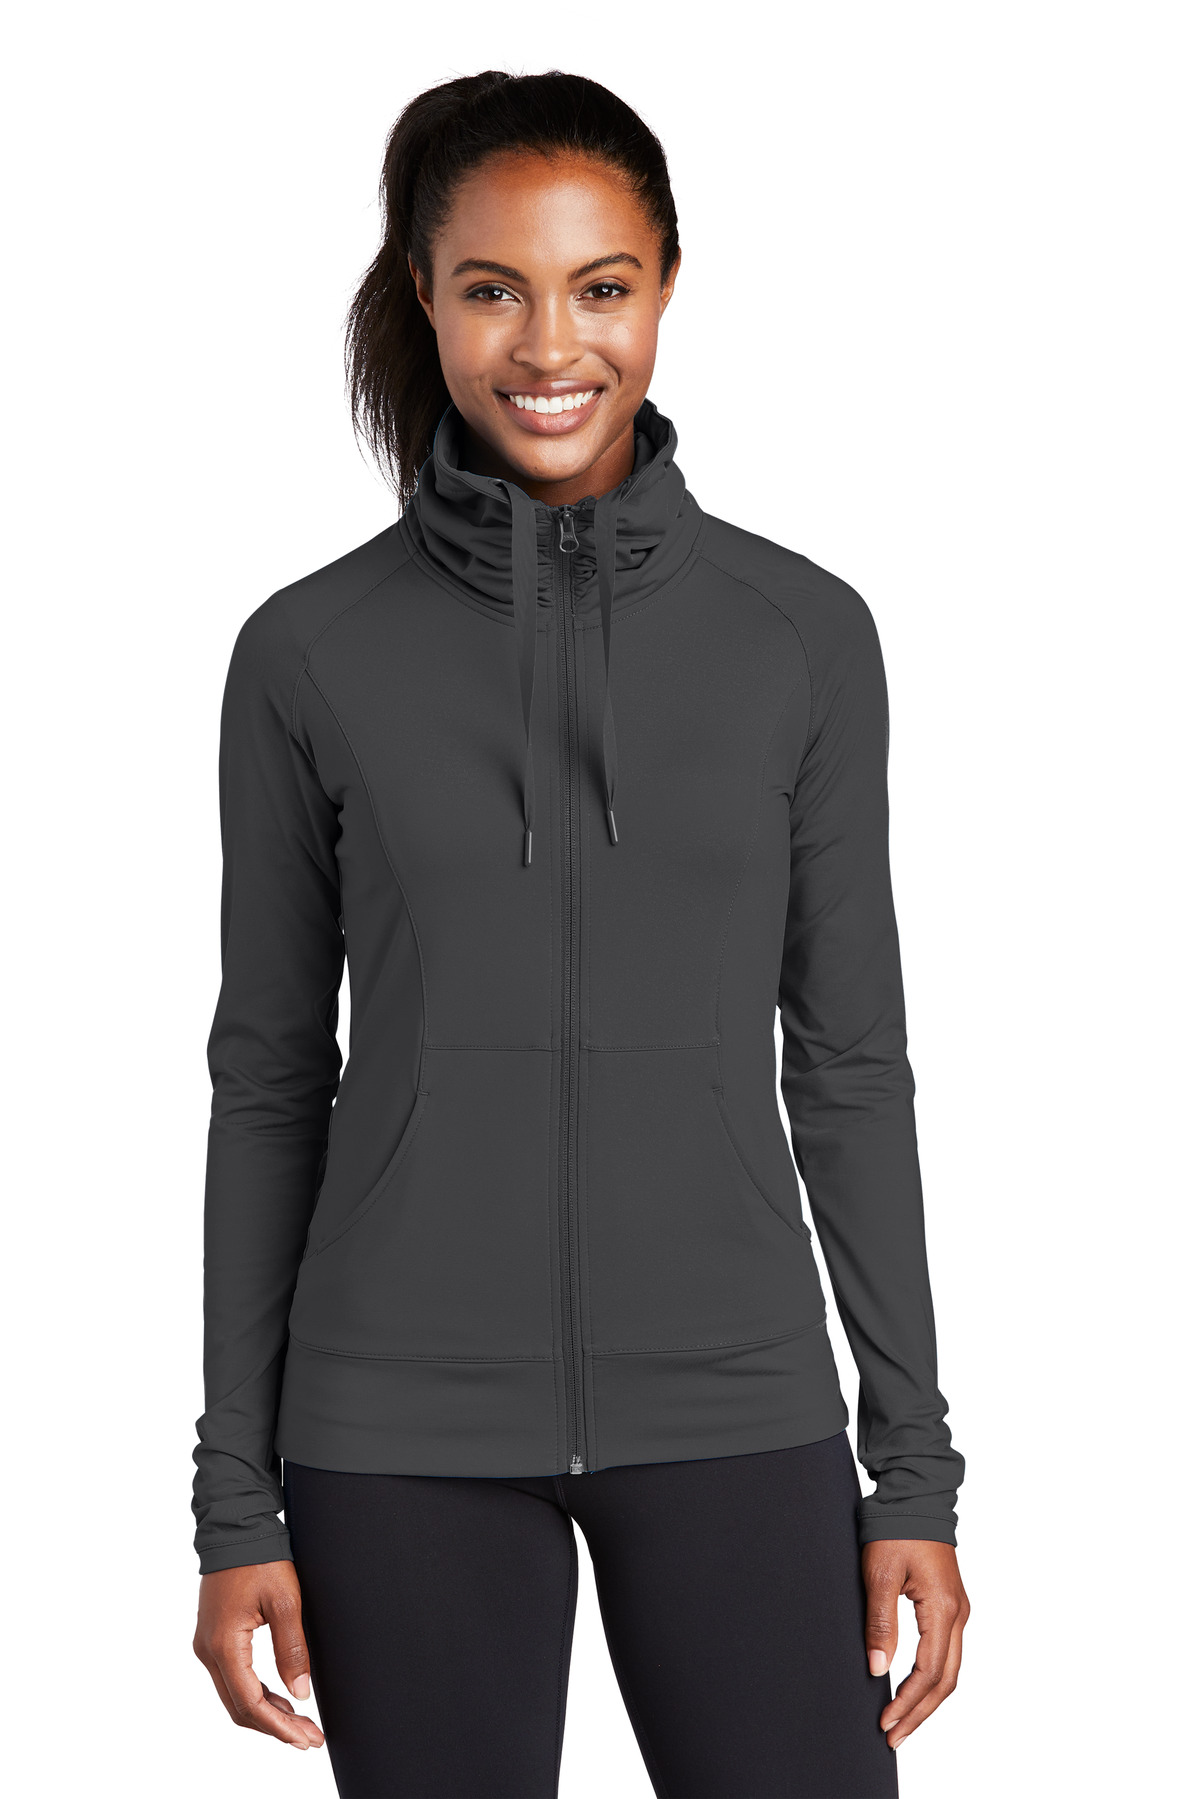 Sport-Tek ®  Ladies Sport-Wick ®  Stretch Full-Zip Jacket. LST852 - Charcoal Grey